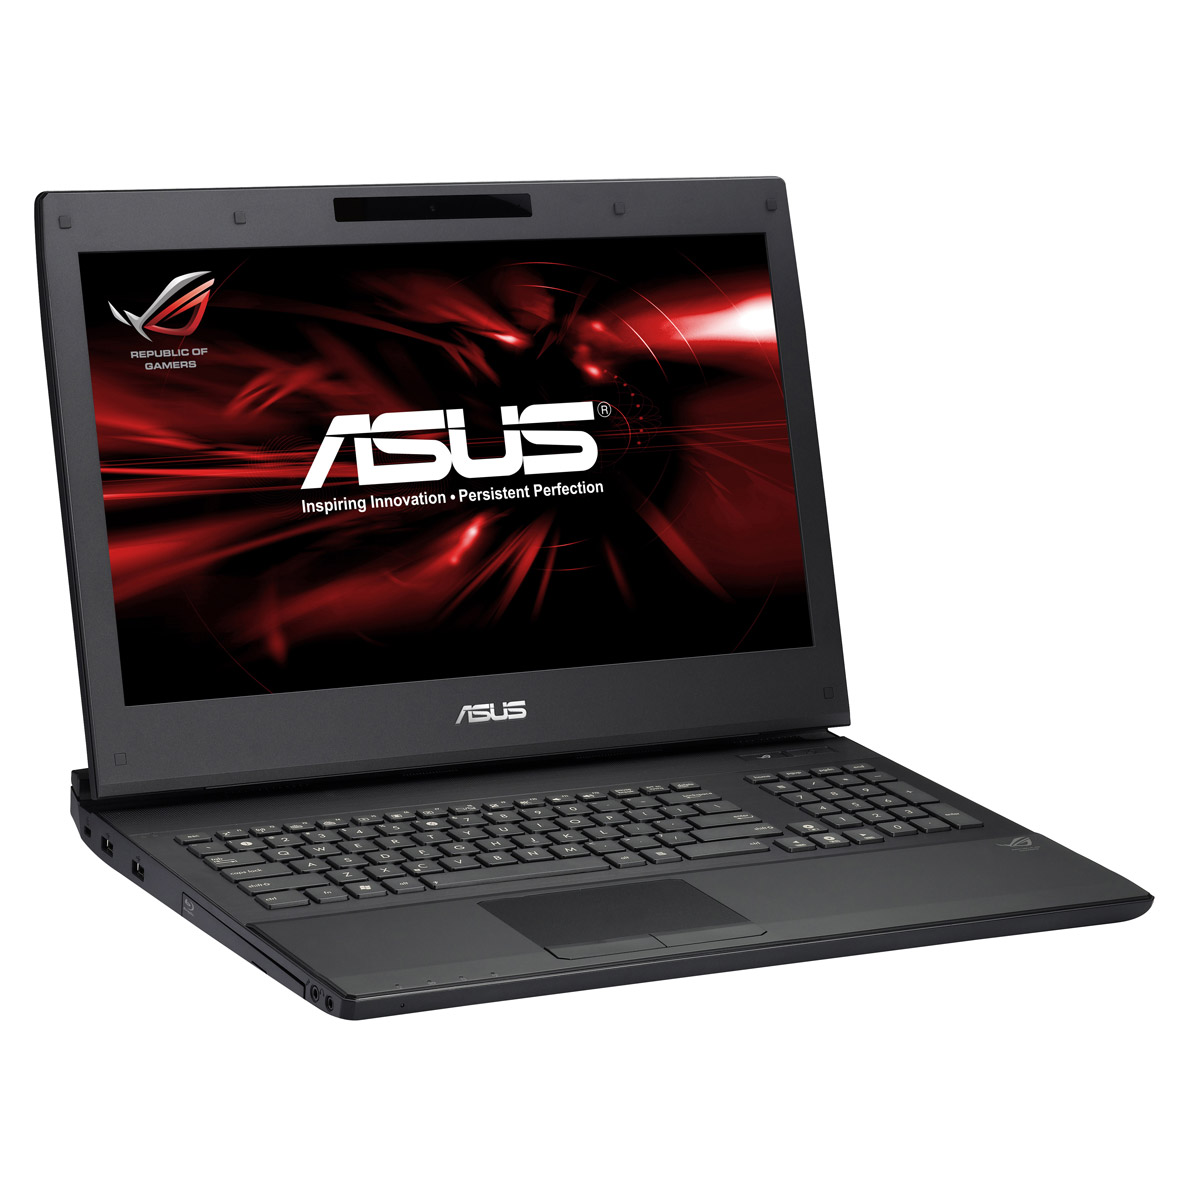 "PC portable ASUS G74SX-TZ378V Intel Core i7-2670QM 8 Go 750 Go + SSD 256 Go 17.3"" LED NVIDIA GeForce GTX 560M Graveur DVD Wi-Fi N/BT Webcam Windows 7 Premium 64 bits (garantie constructeur 2 ans)"